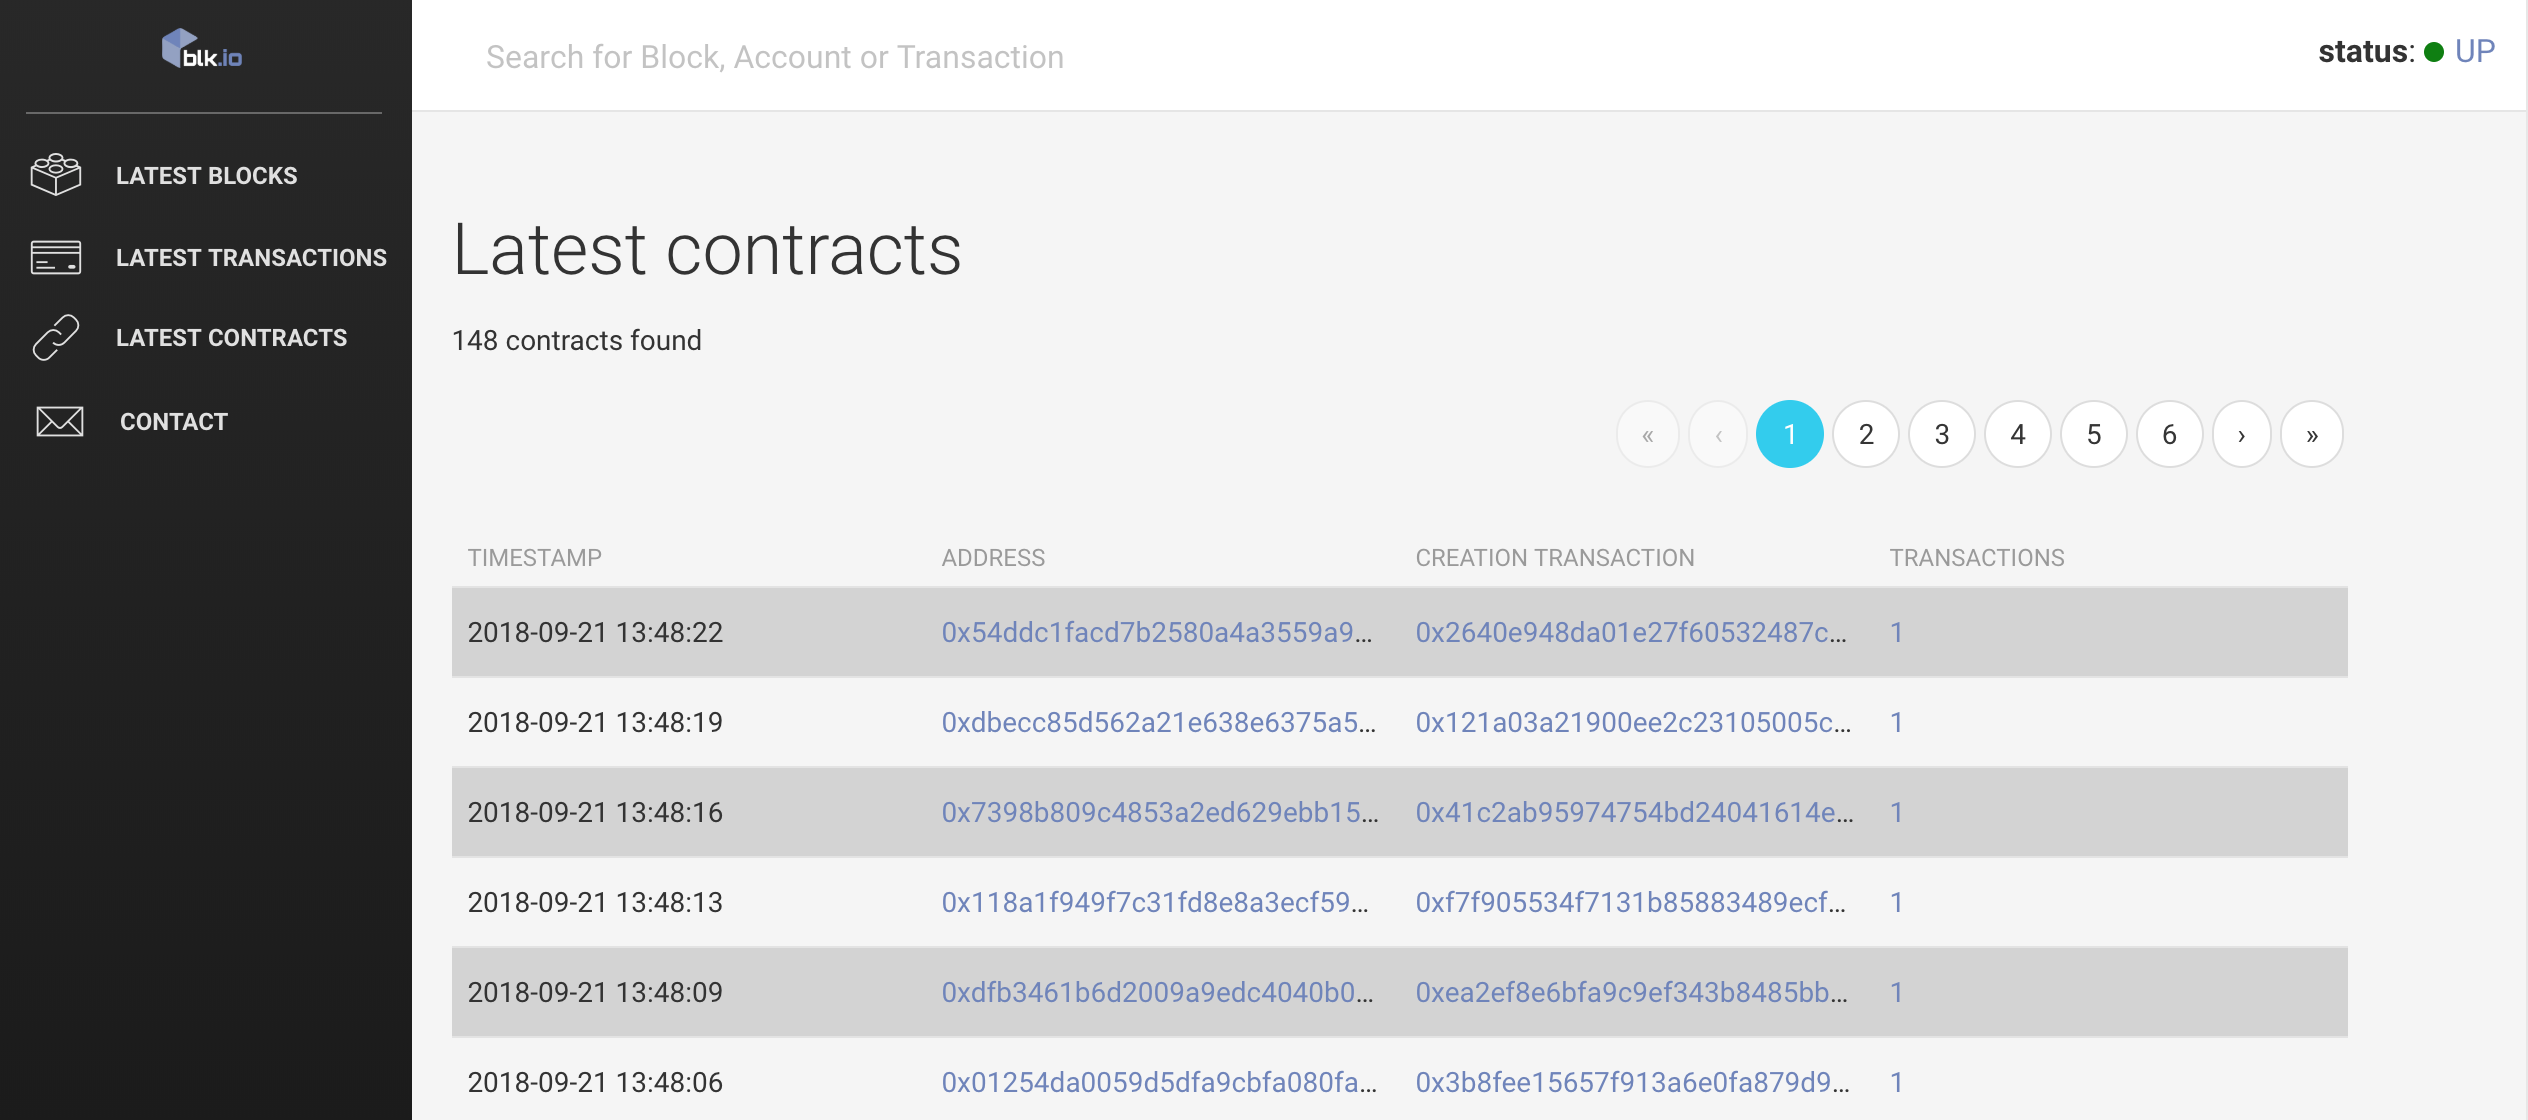 Trade contracts browsable in our Blockchain Explorer